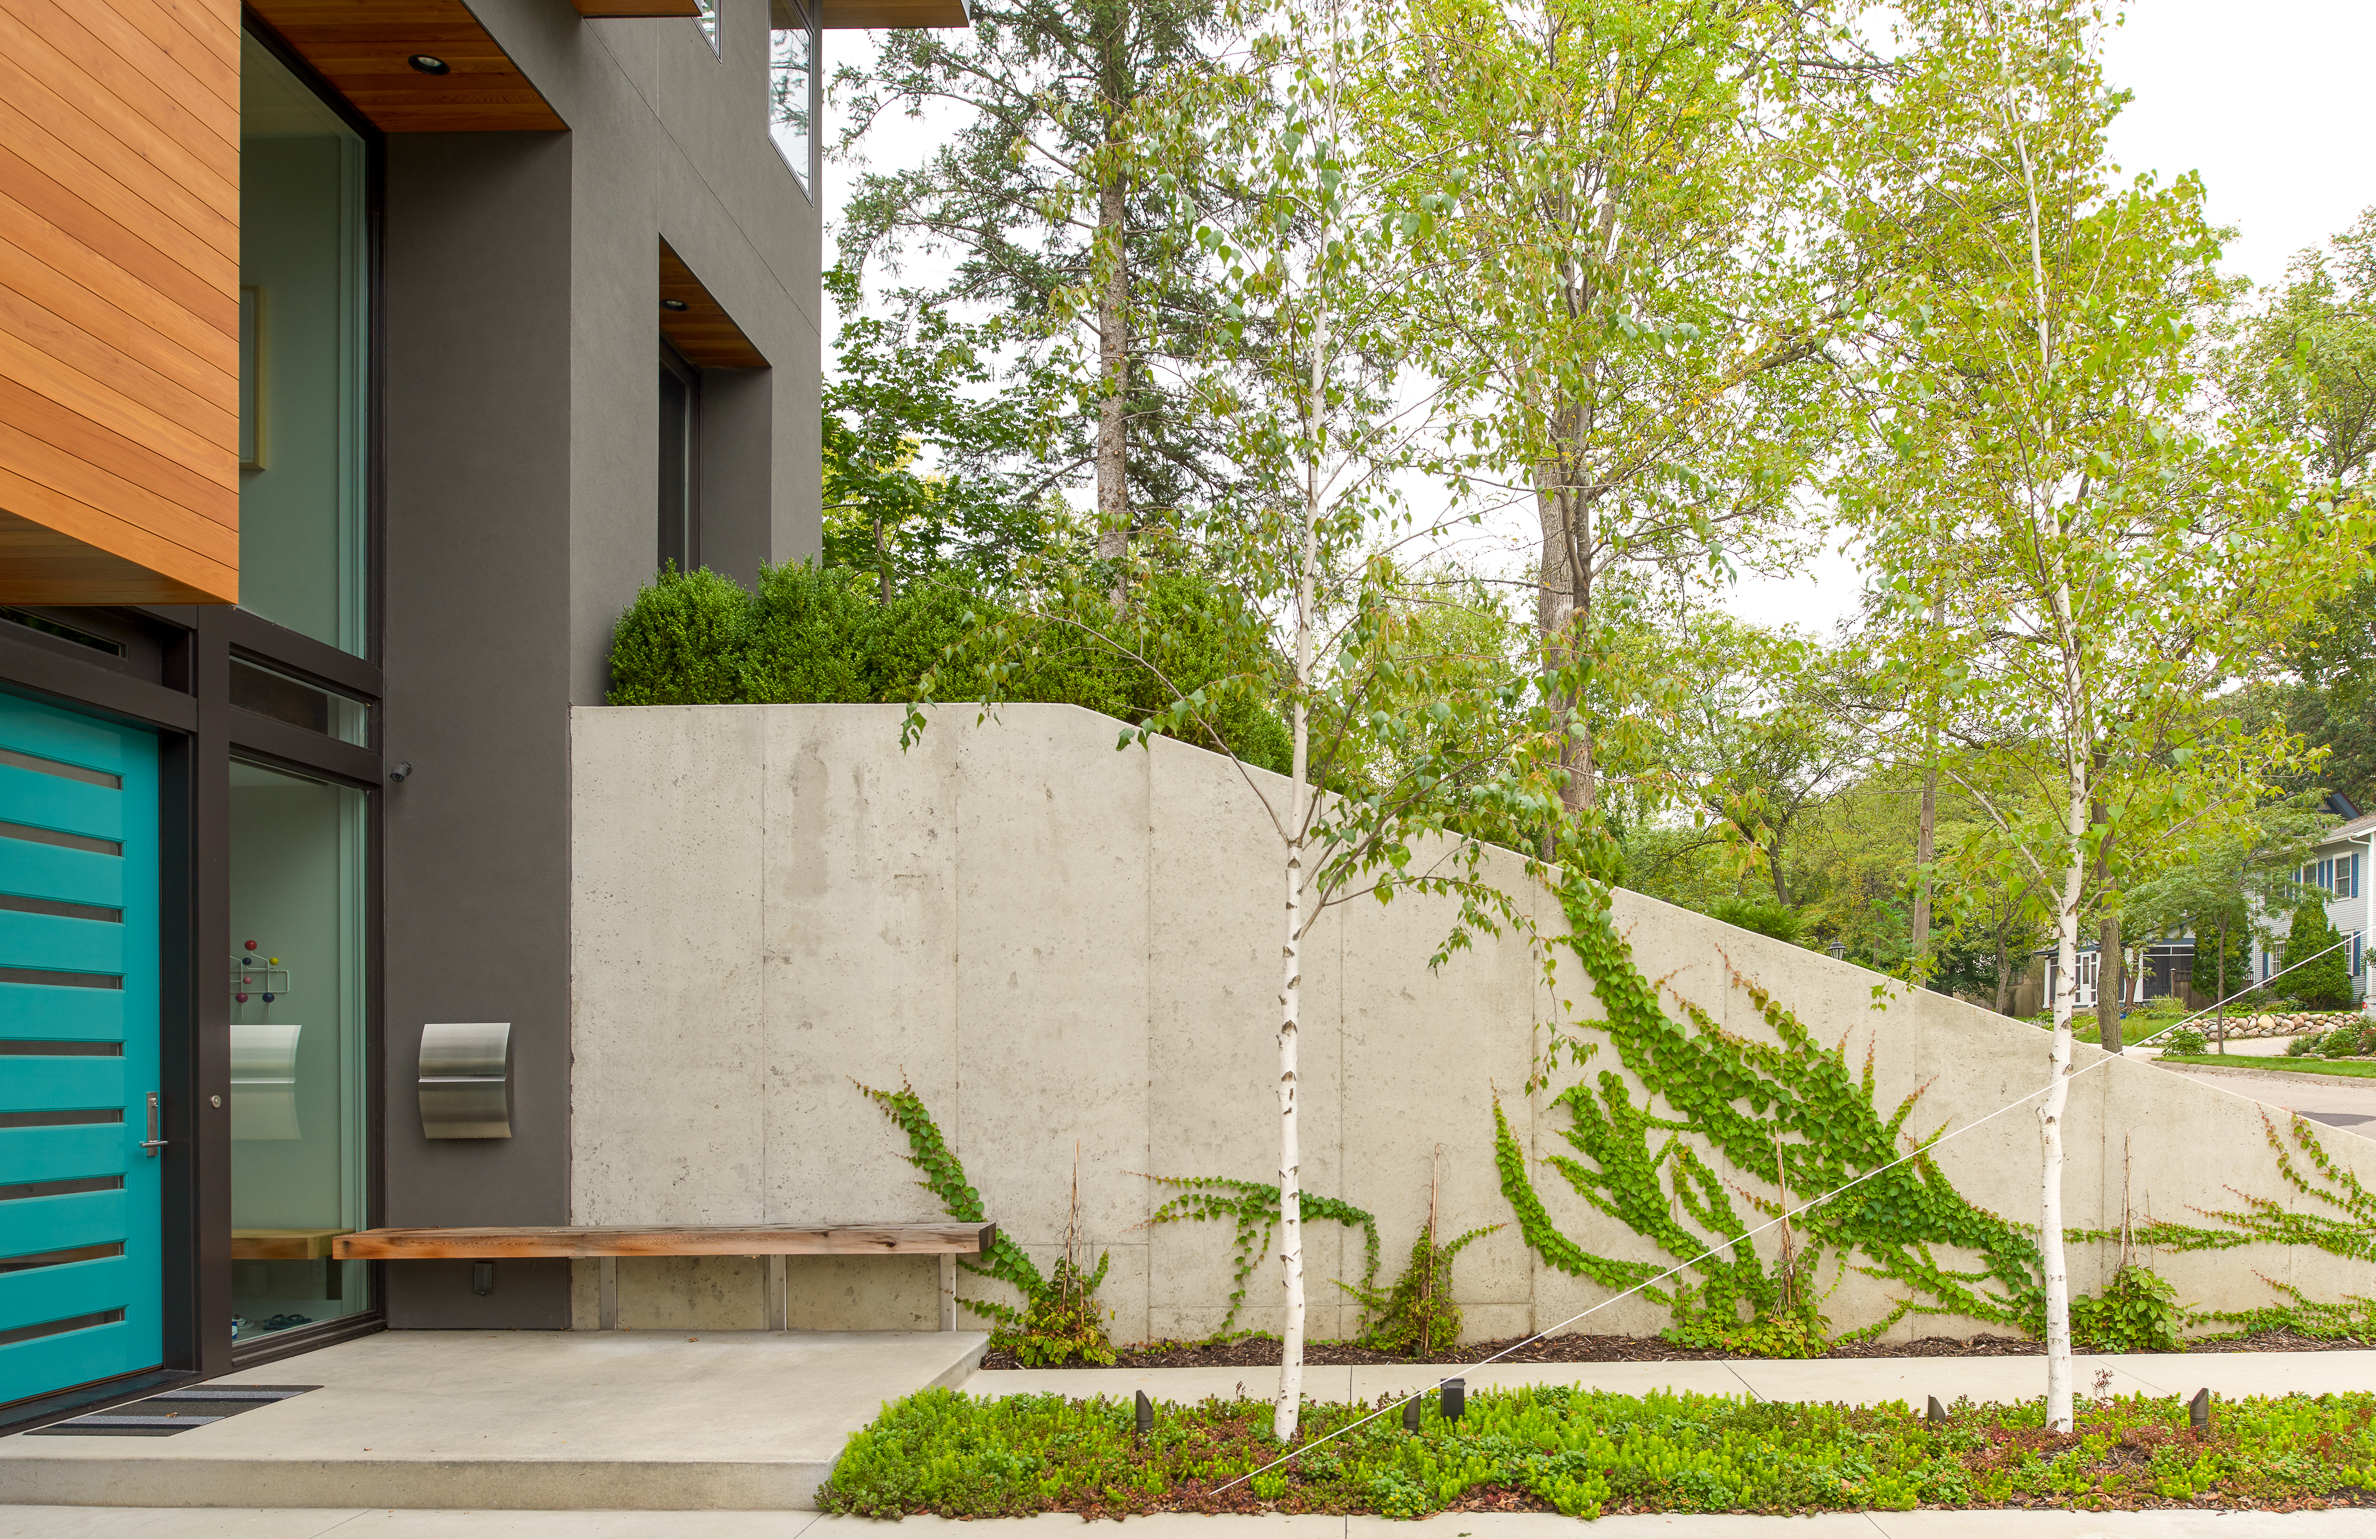 Concrete retaining wall with modern landscape and a floating entry bench